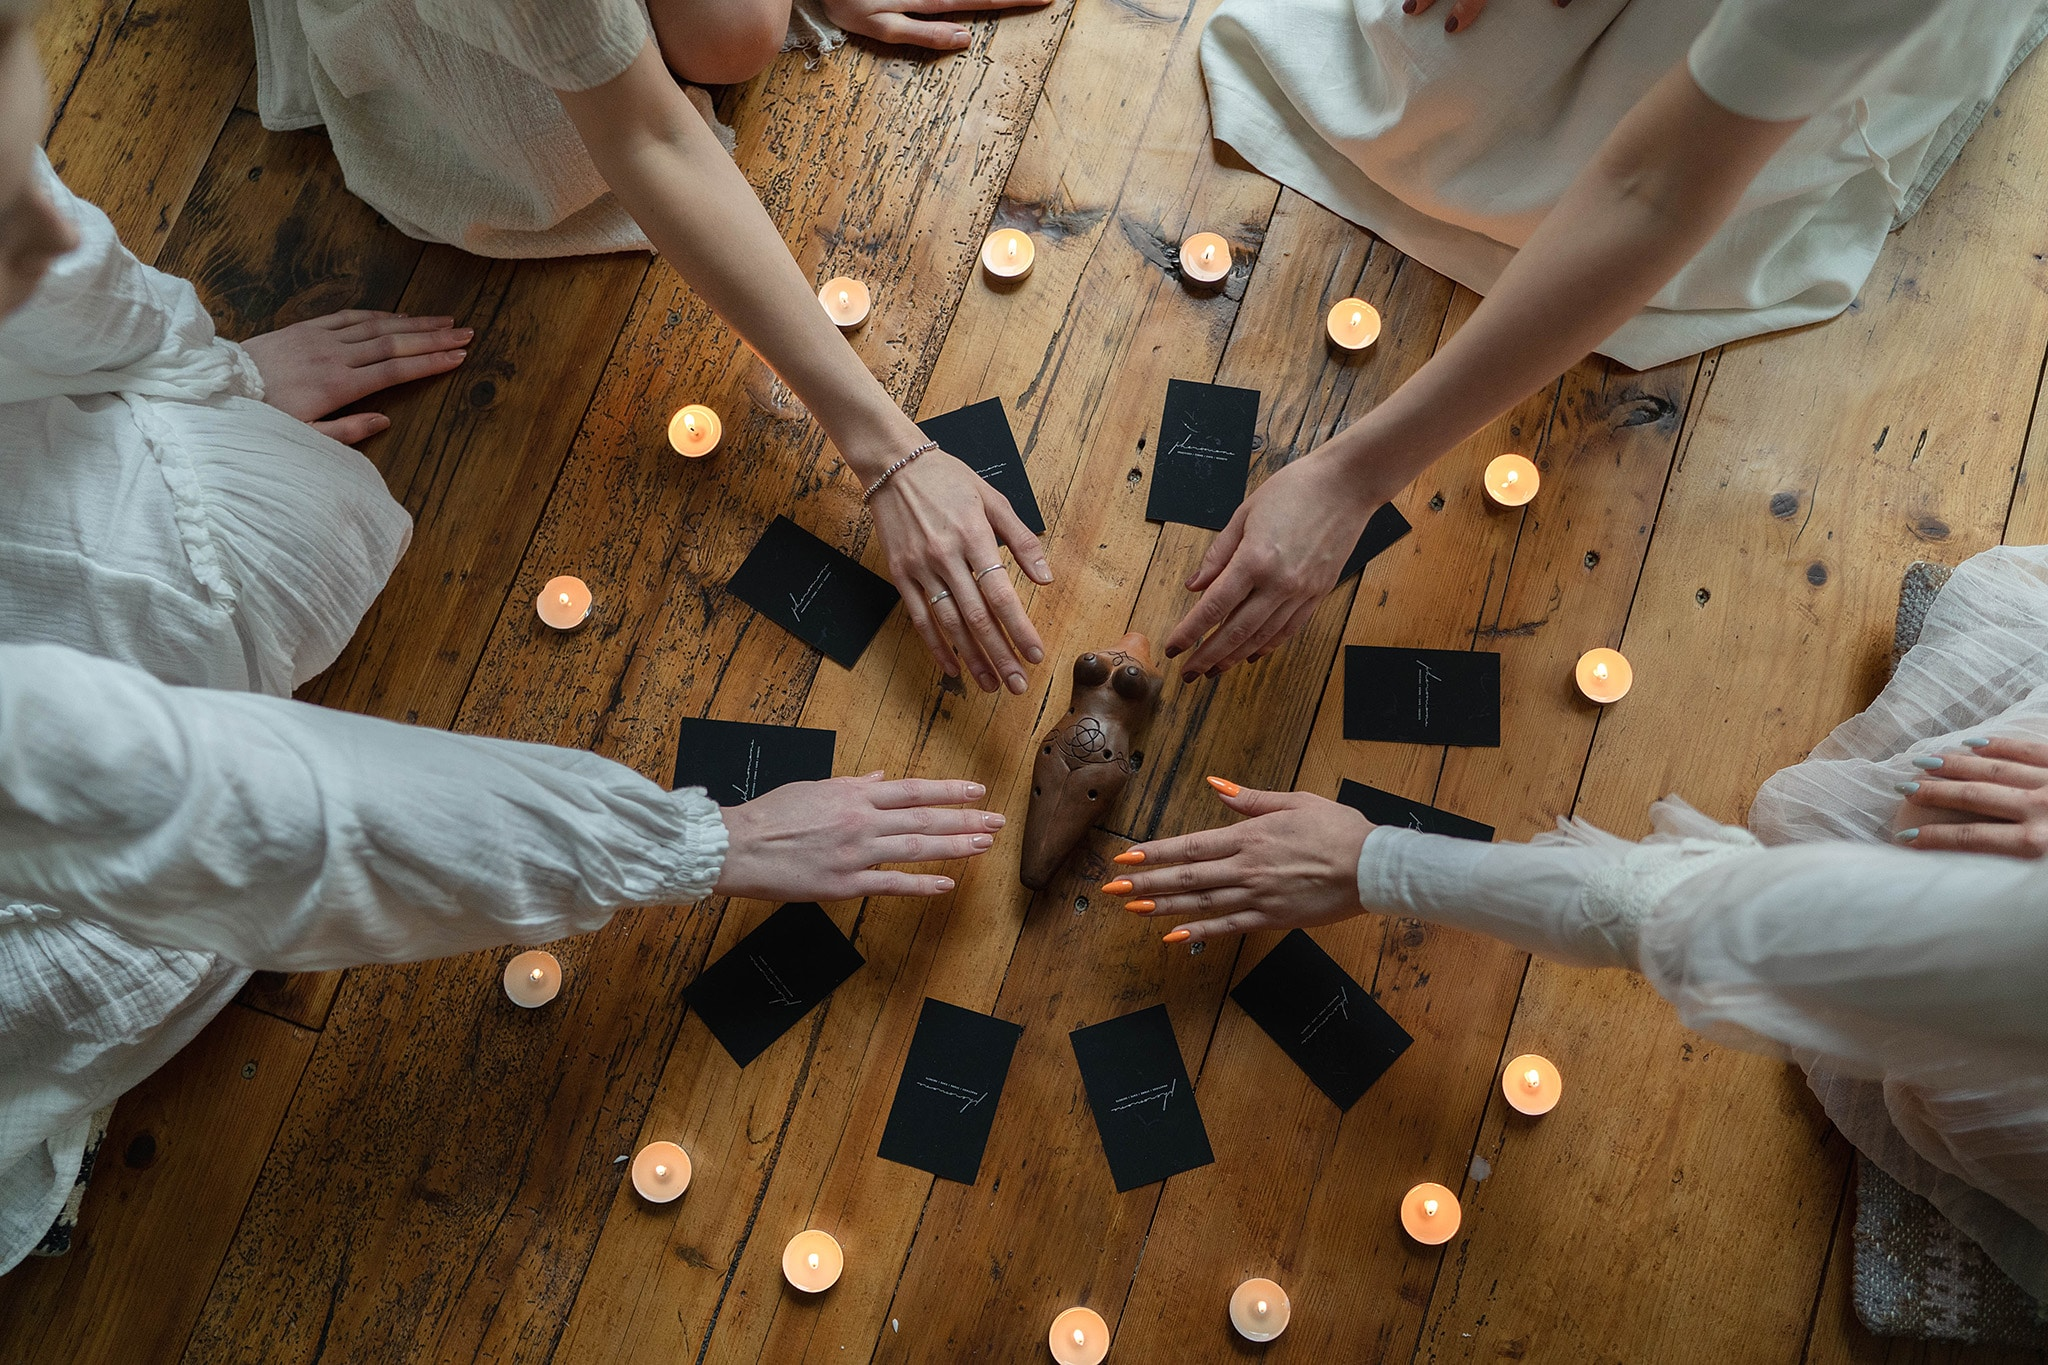 An aerial view of four arms reaching into the center of the image where tarot cards are laid out in a circle among tealight candles, symbolizing the activist witches who use tarot for social justice